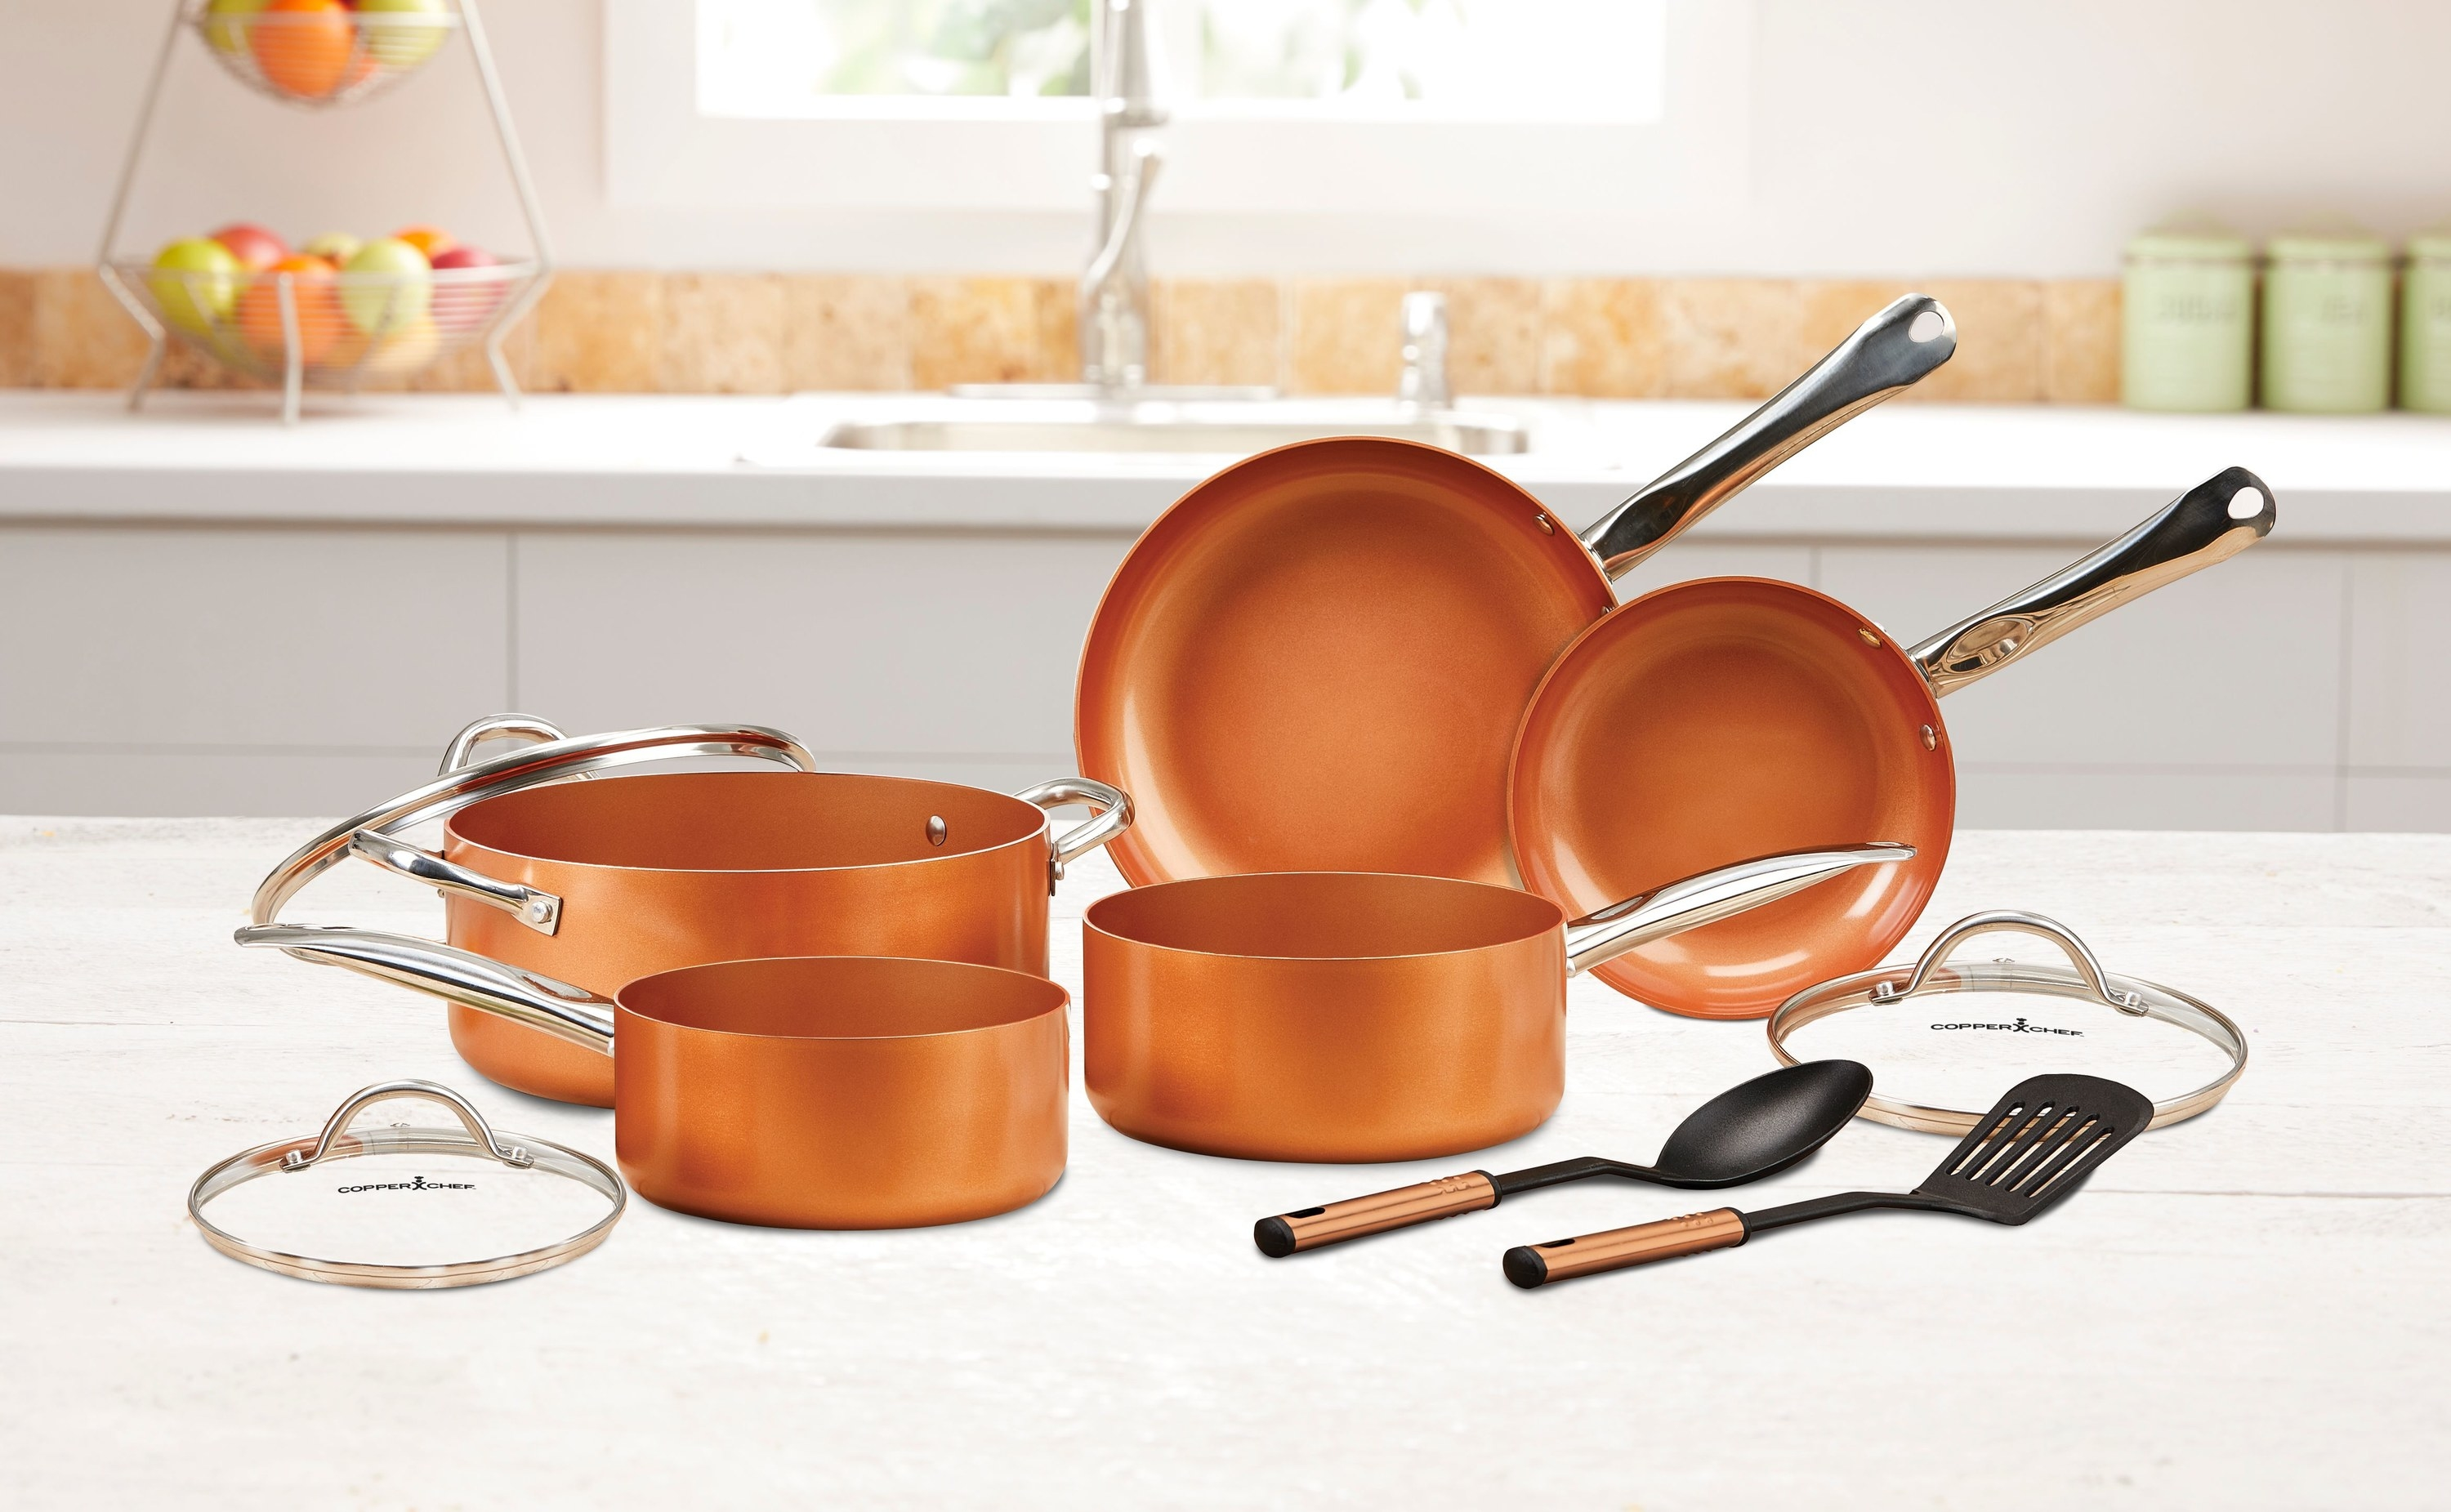 the pan set in copper with silver handles